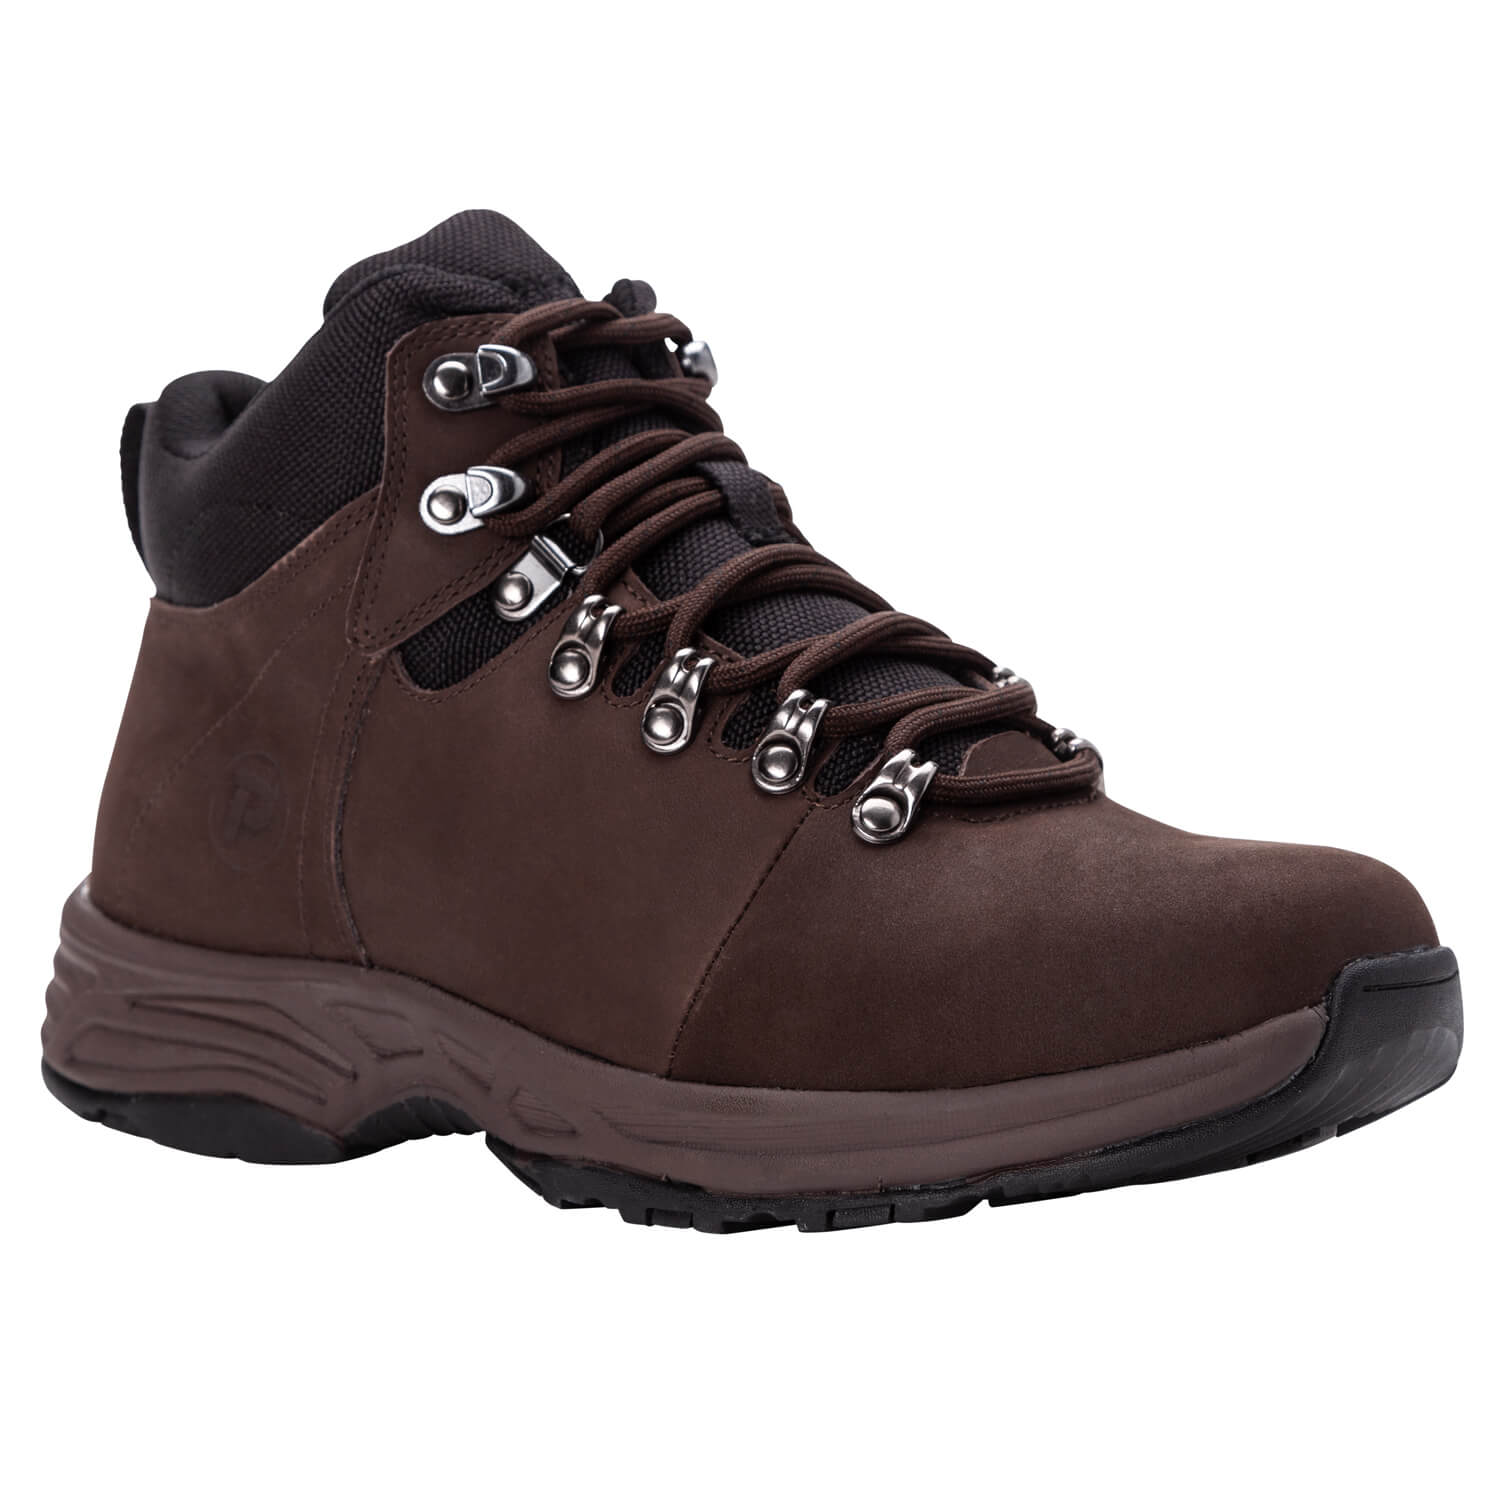 Propet Cody - Men's Water-Resistant Hiking Boot - Color : Brown, Shoe Size : 11.5, Width : XW (